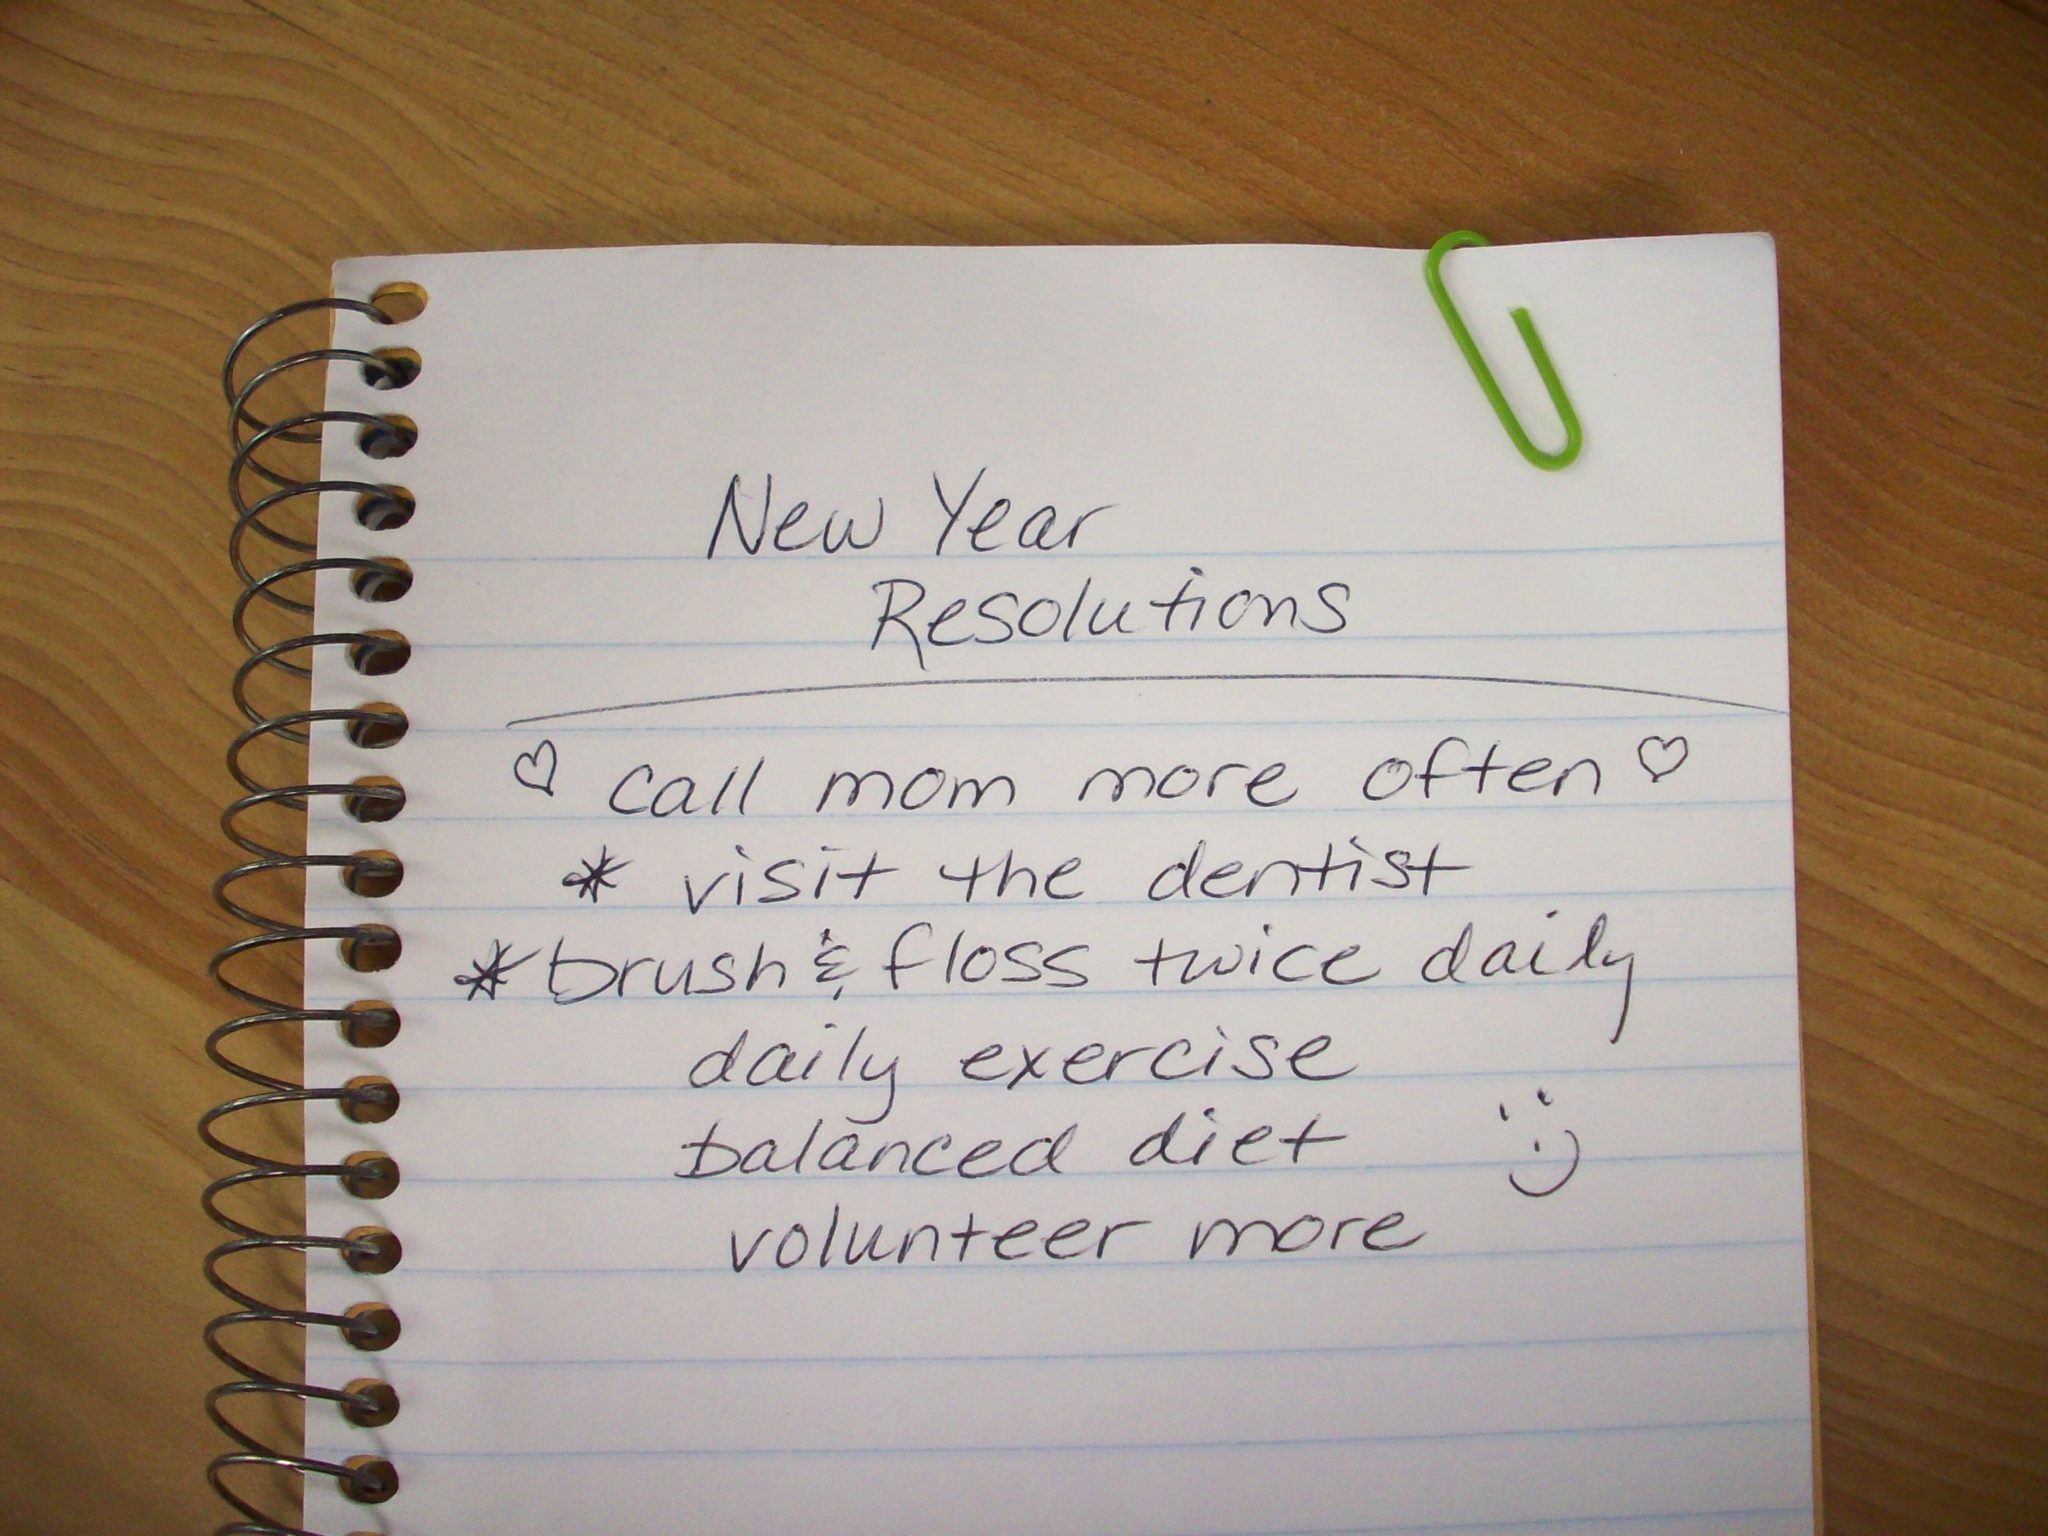 Resolutions at Seasons of Smiles Dental